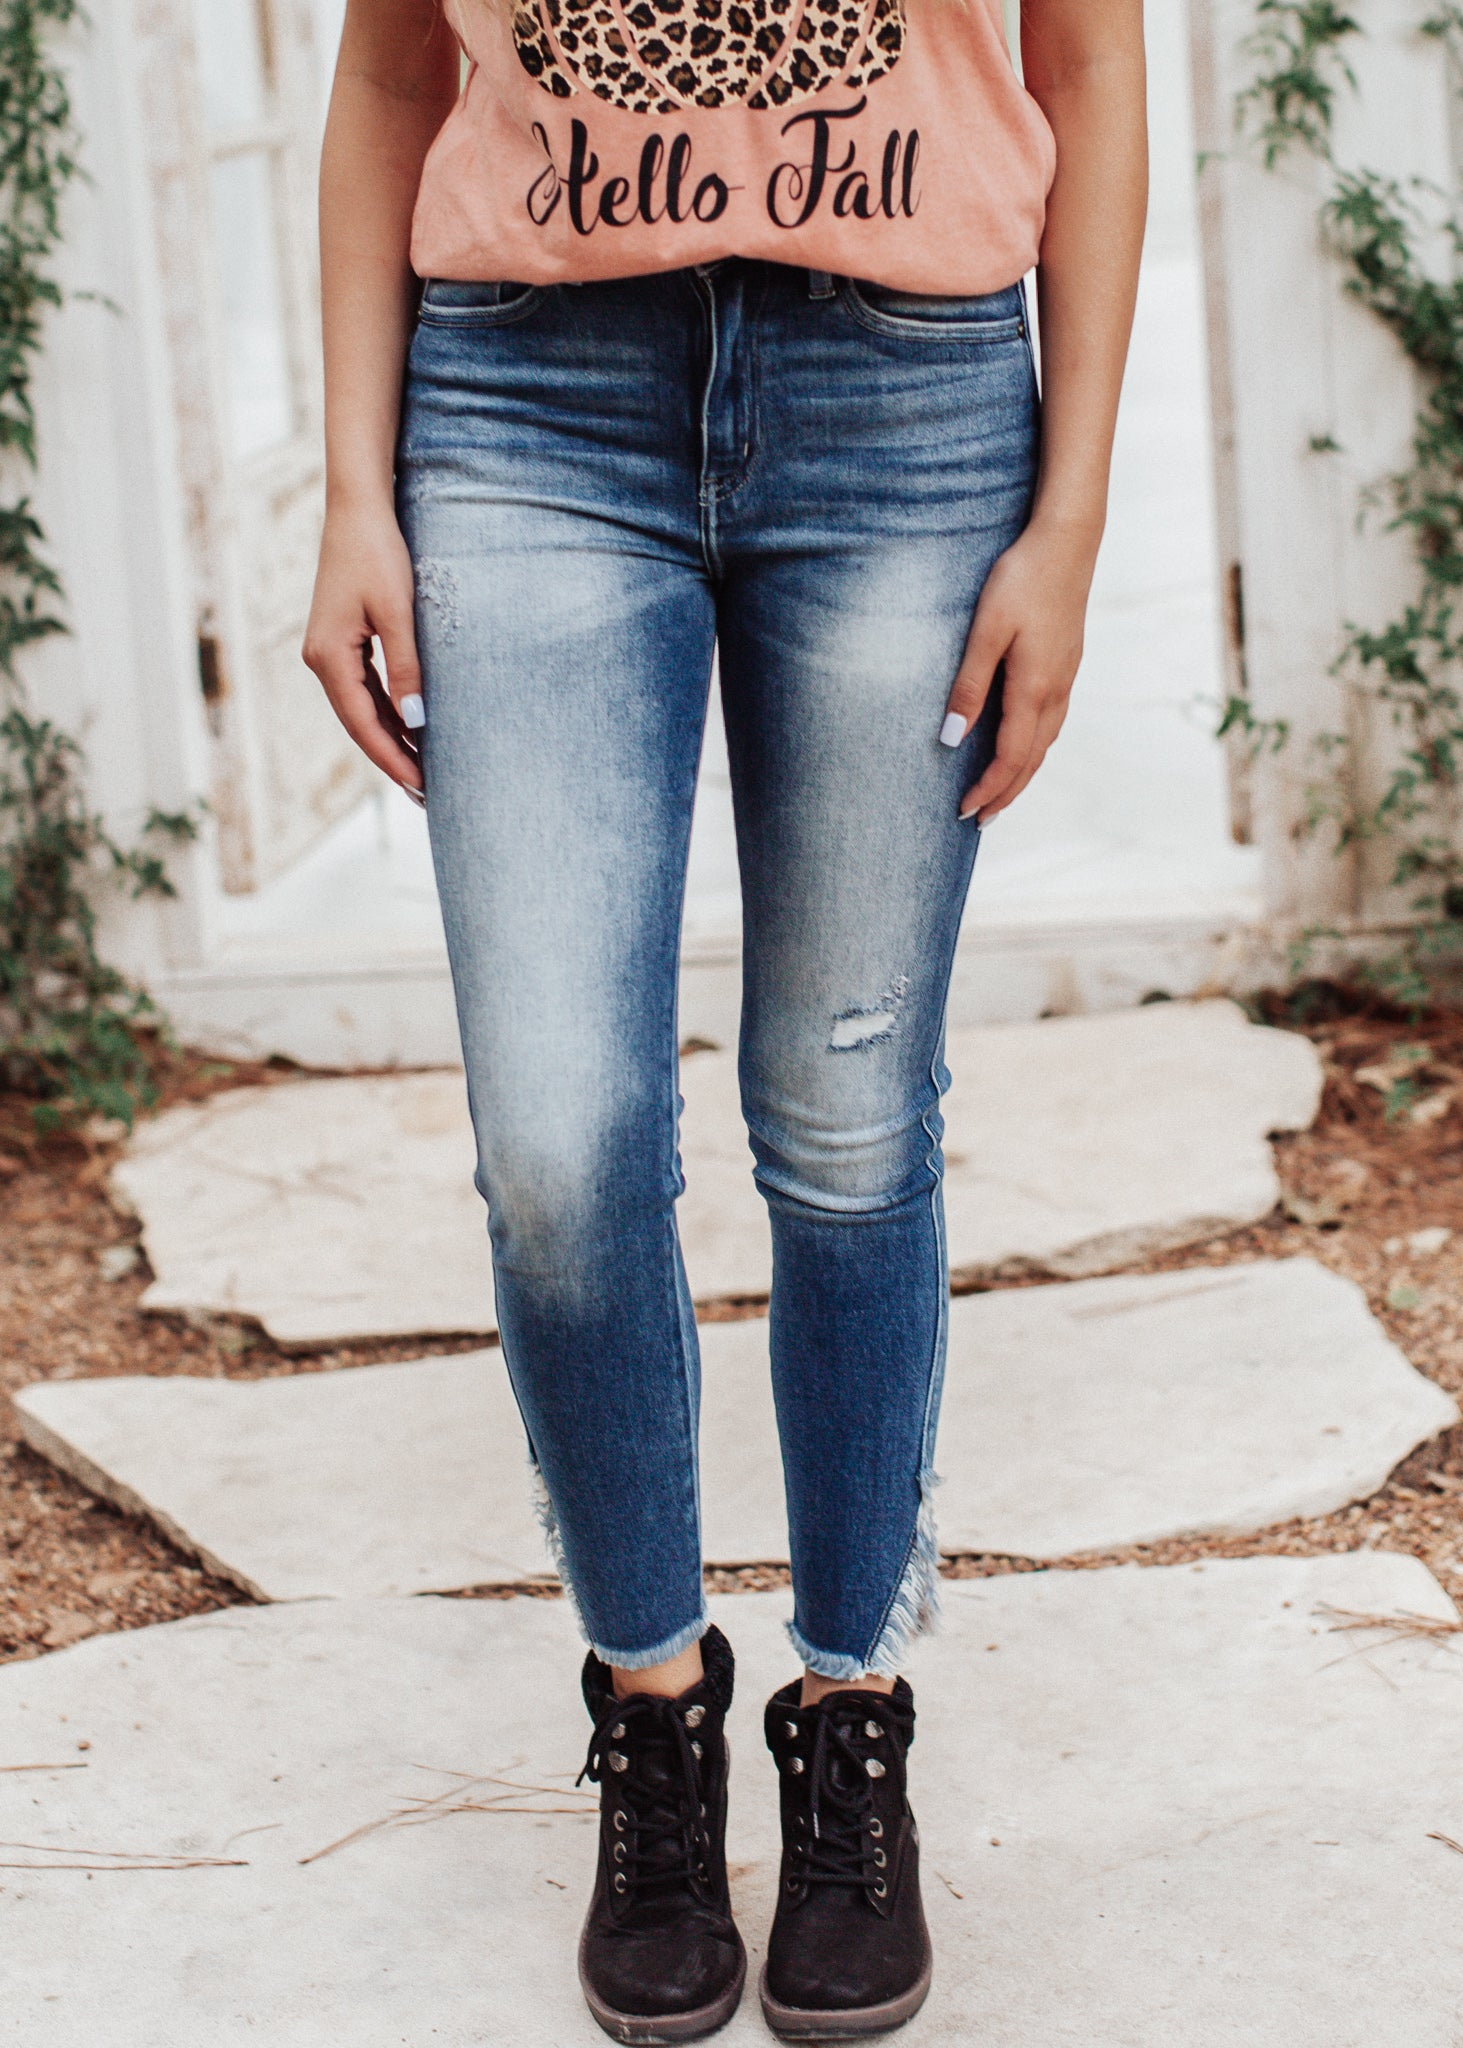 Jerry Kancan Jeans (1-15)